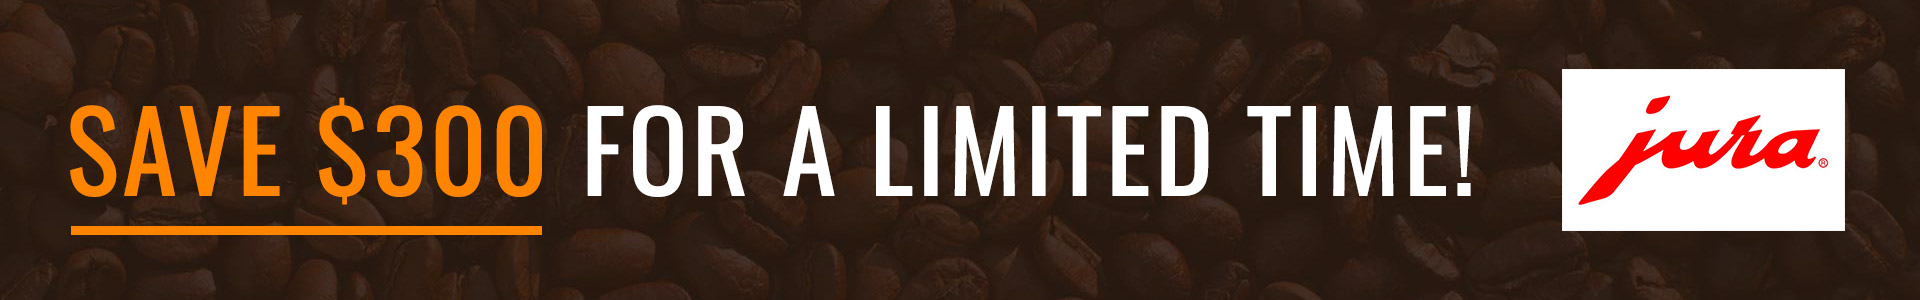 Product-Sale-banner-home-coffee-machines-SAVE-300